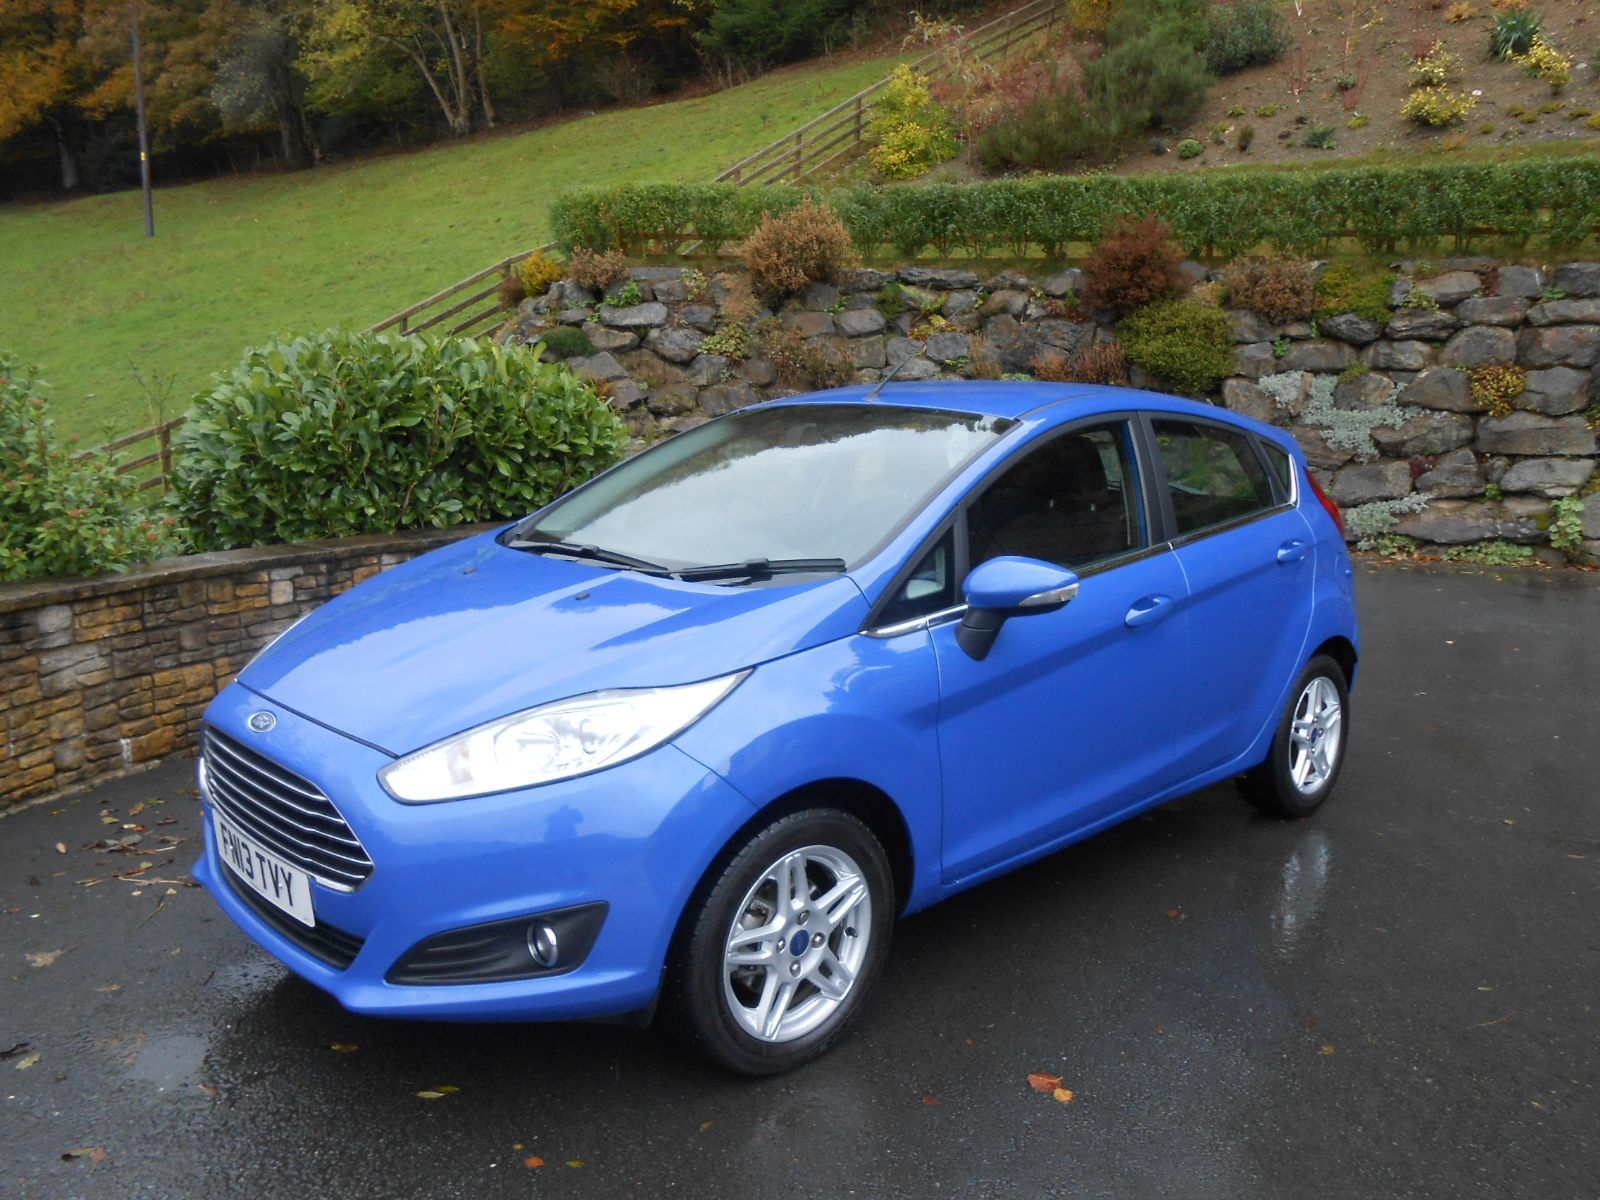 Ford Fiesta 1 0 80ps Zetec S S Car For Sale Llanidloes